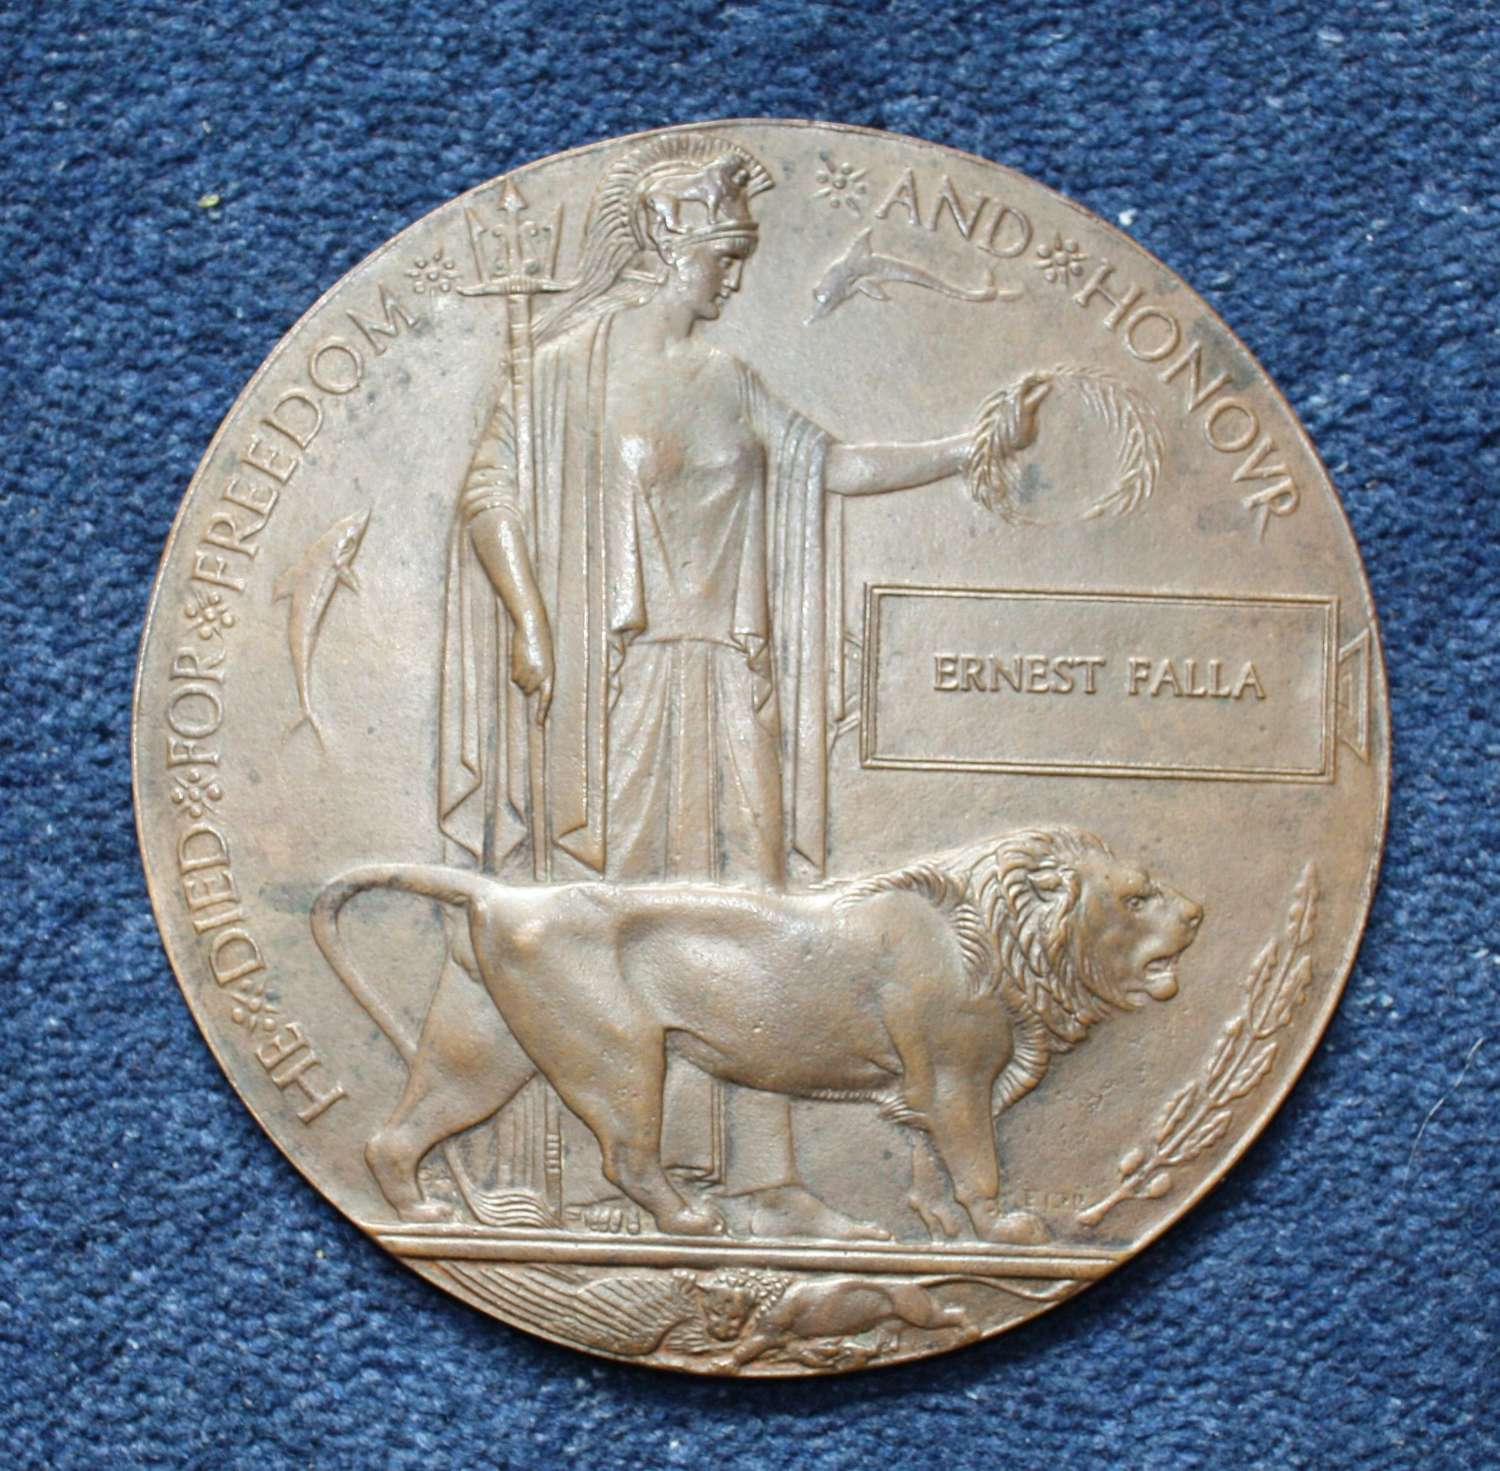 Death Plaque to Ernest Falla: Possible 1st Day of Somme Casualty